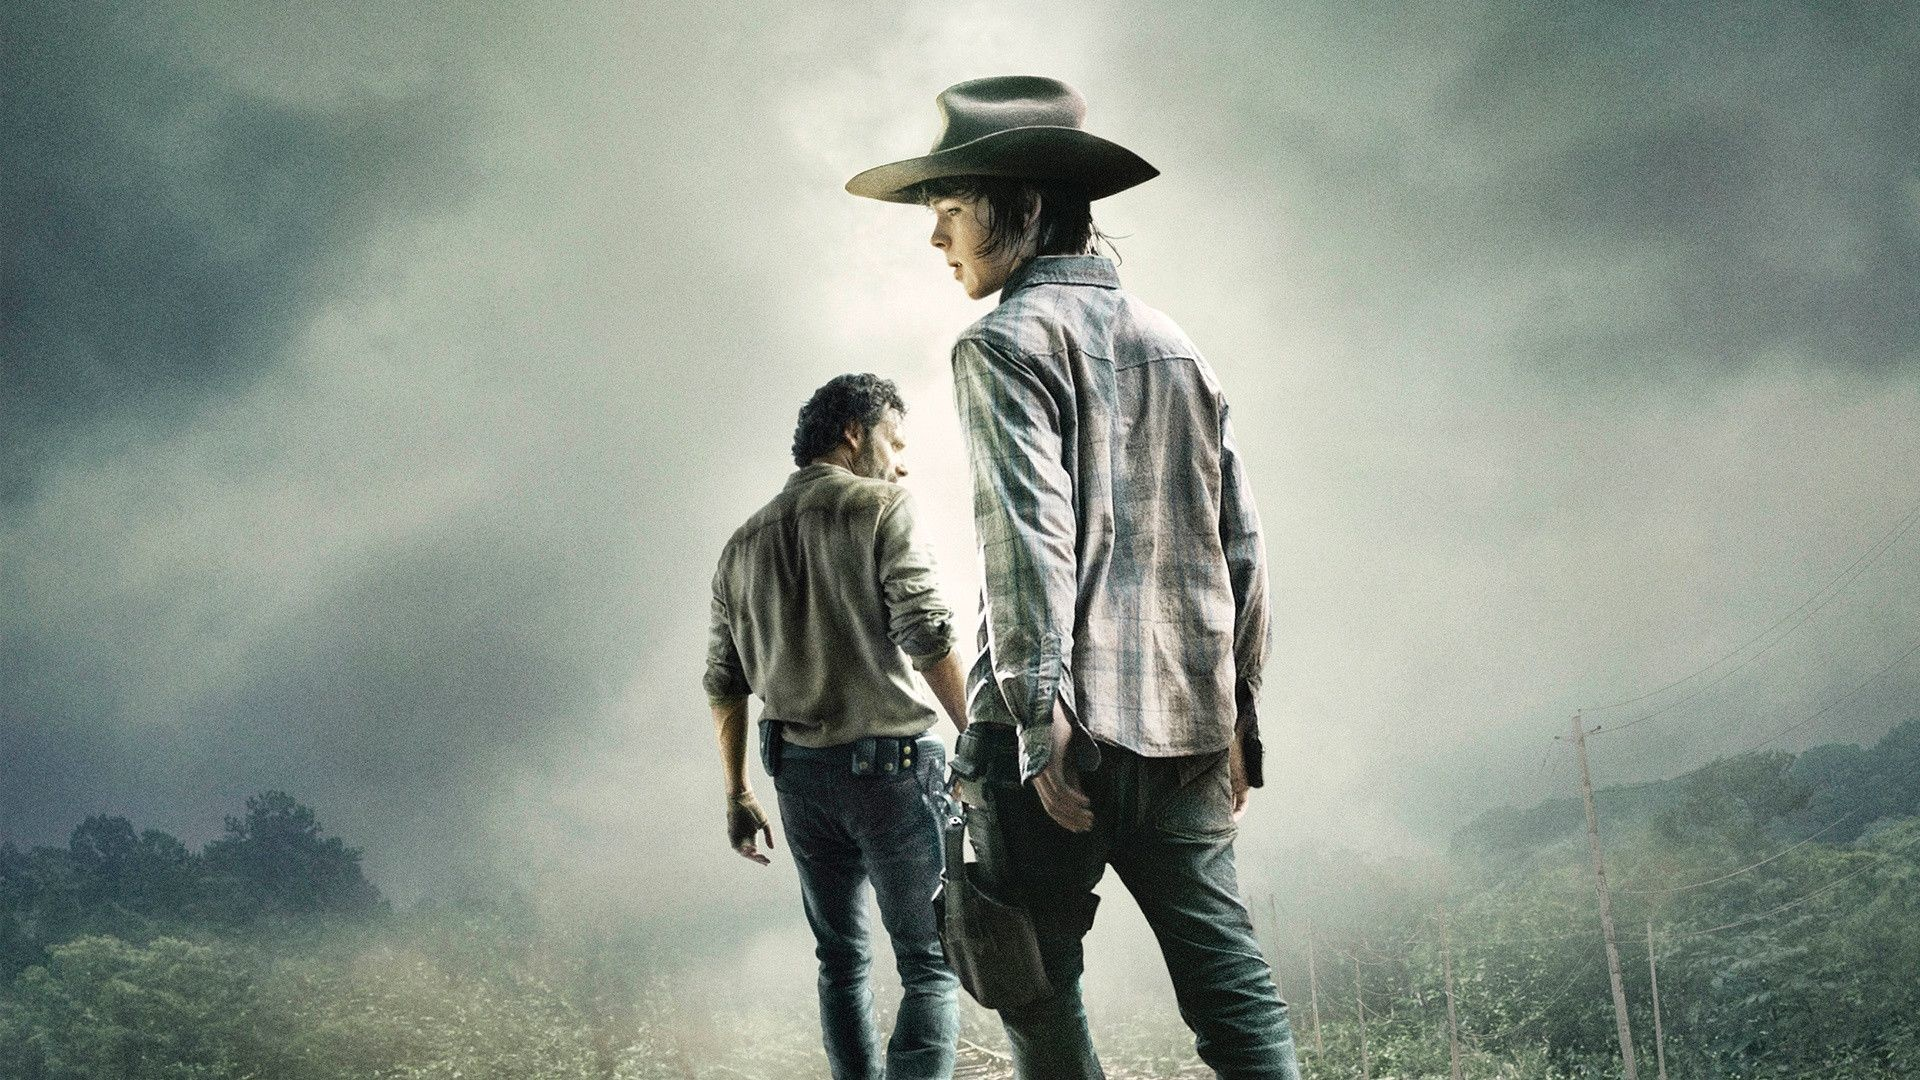 The Walking Dead 7 Wallpapers Wallpapertag